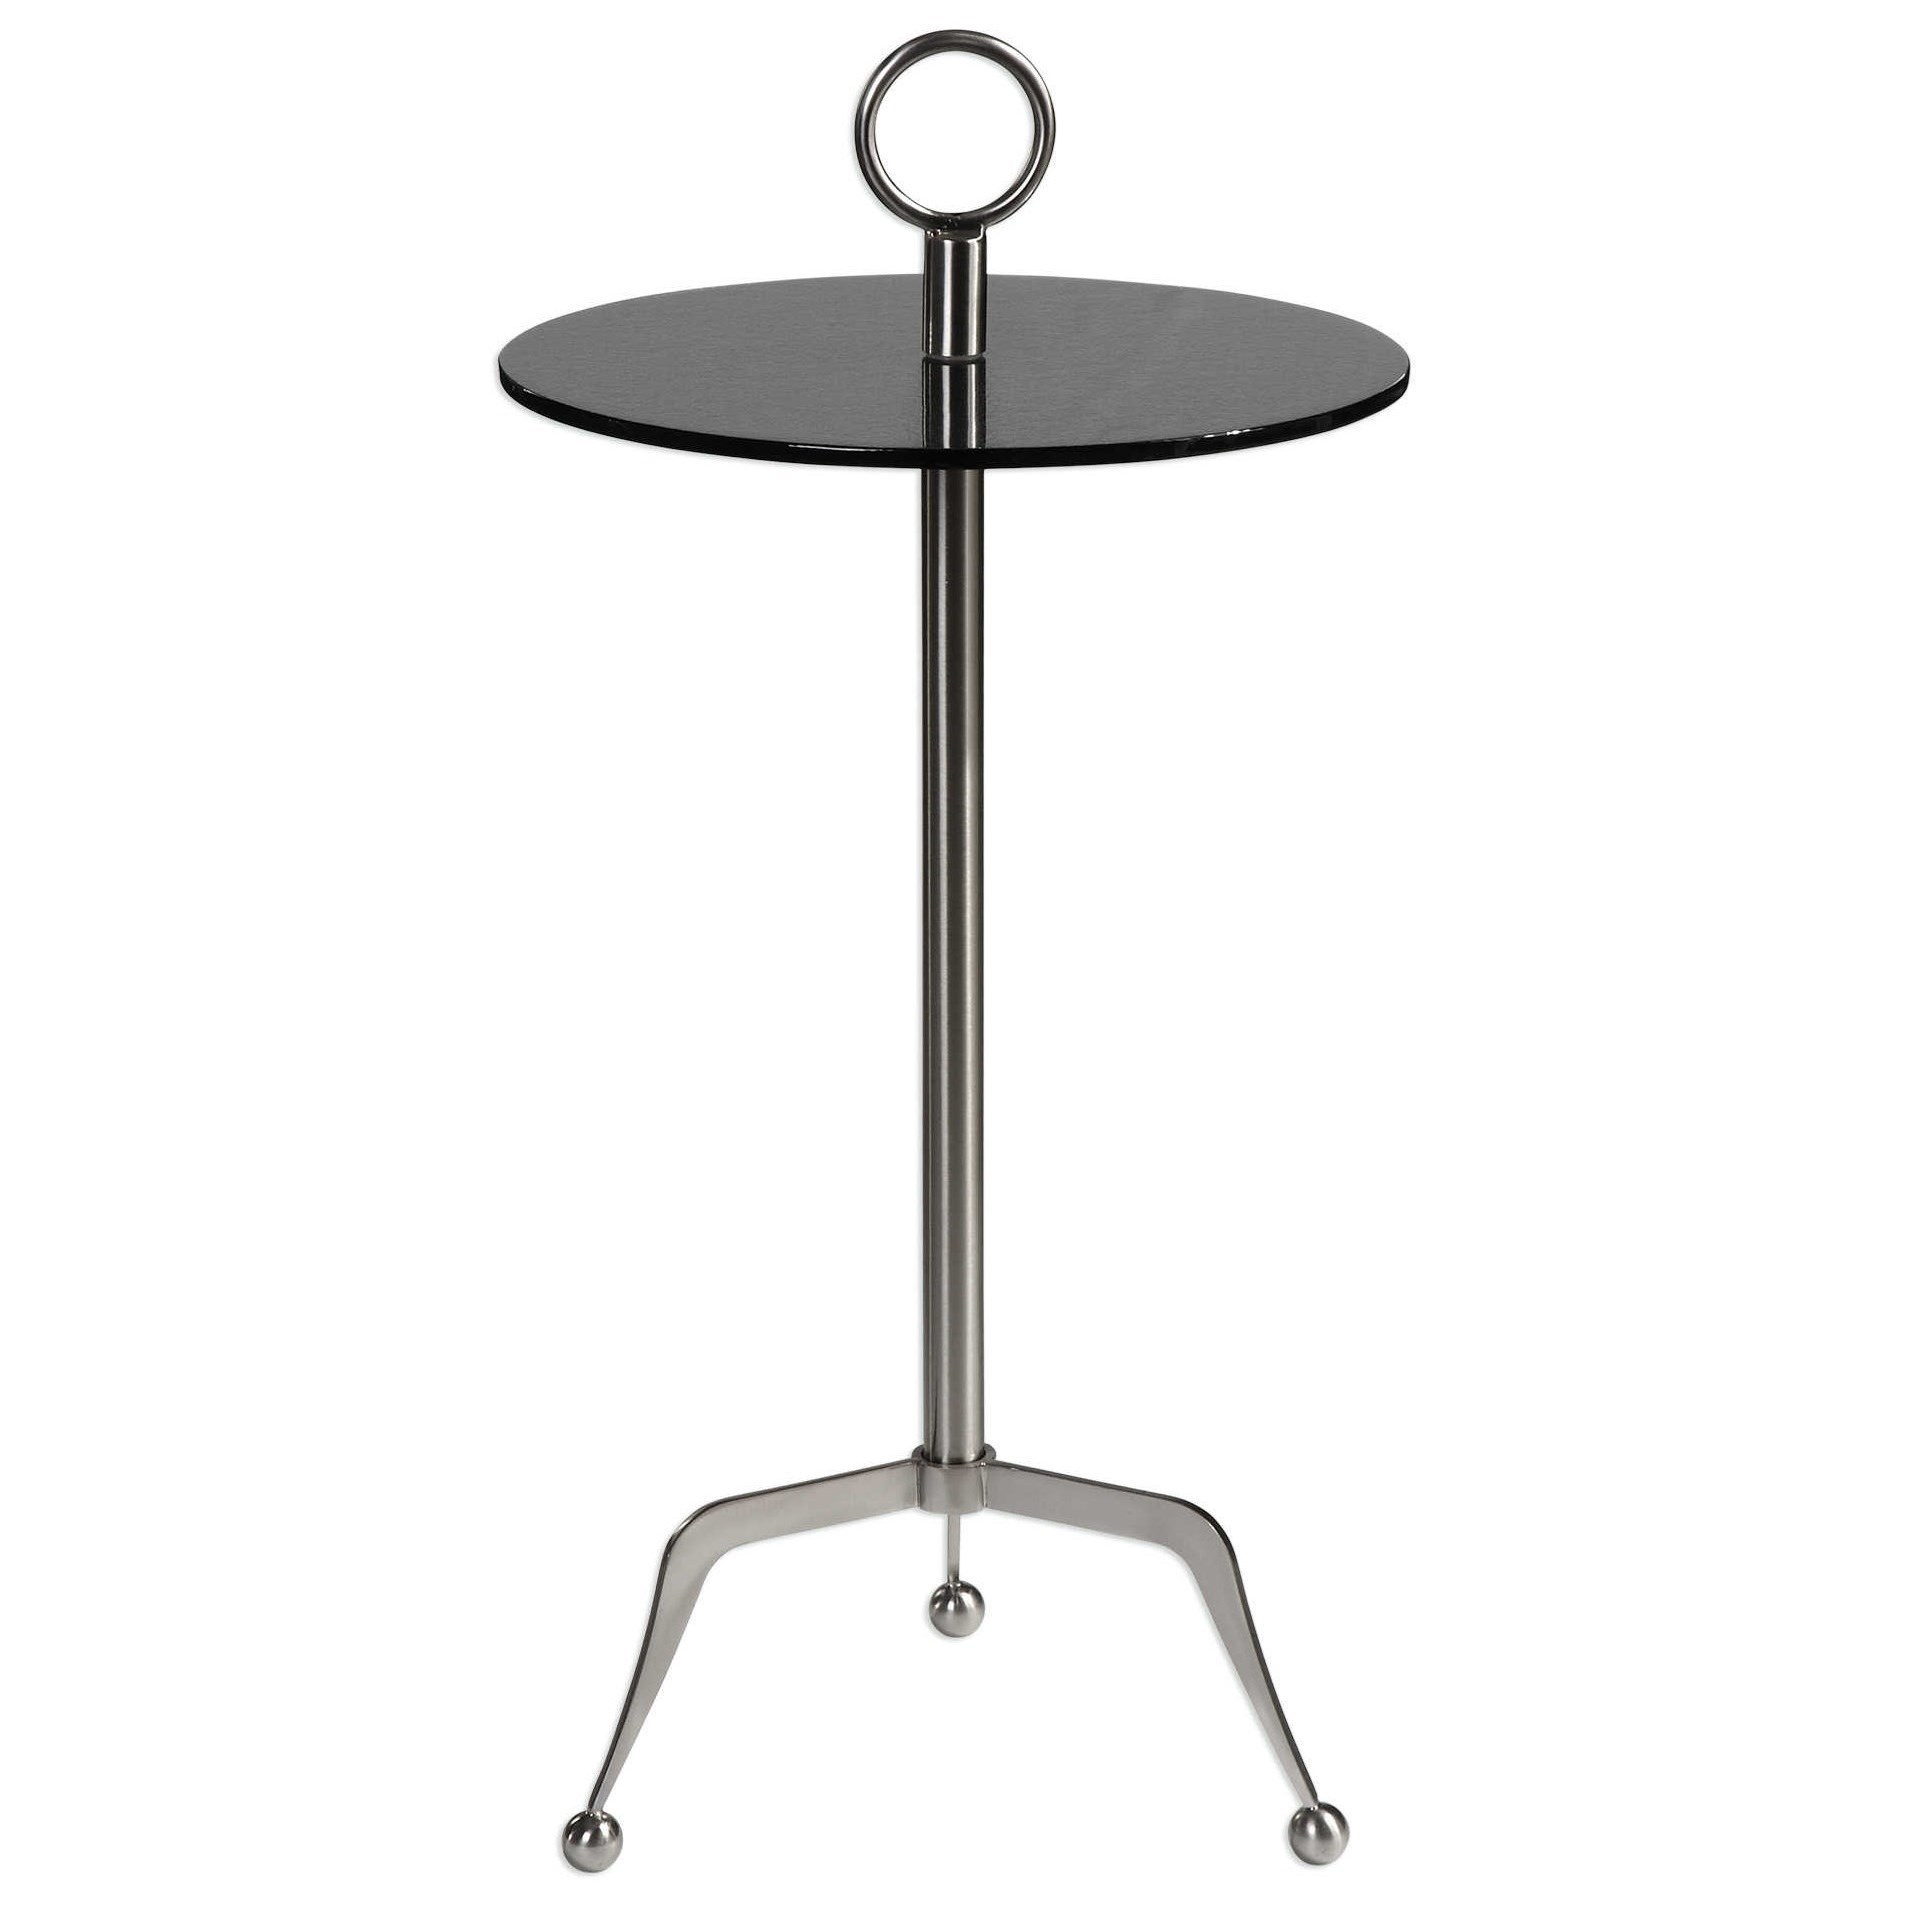 Medium image of uttermost accent furniture 24751 astro stainless steel accent table   becker furniture world   end tables